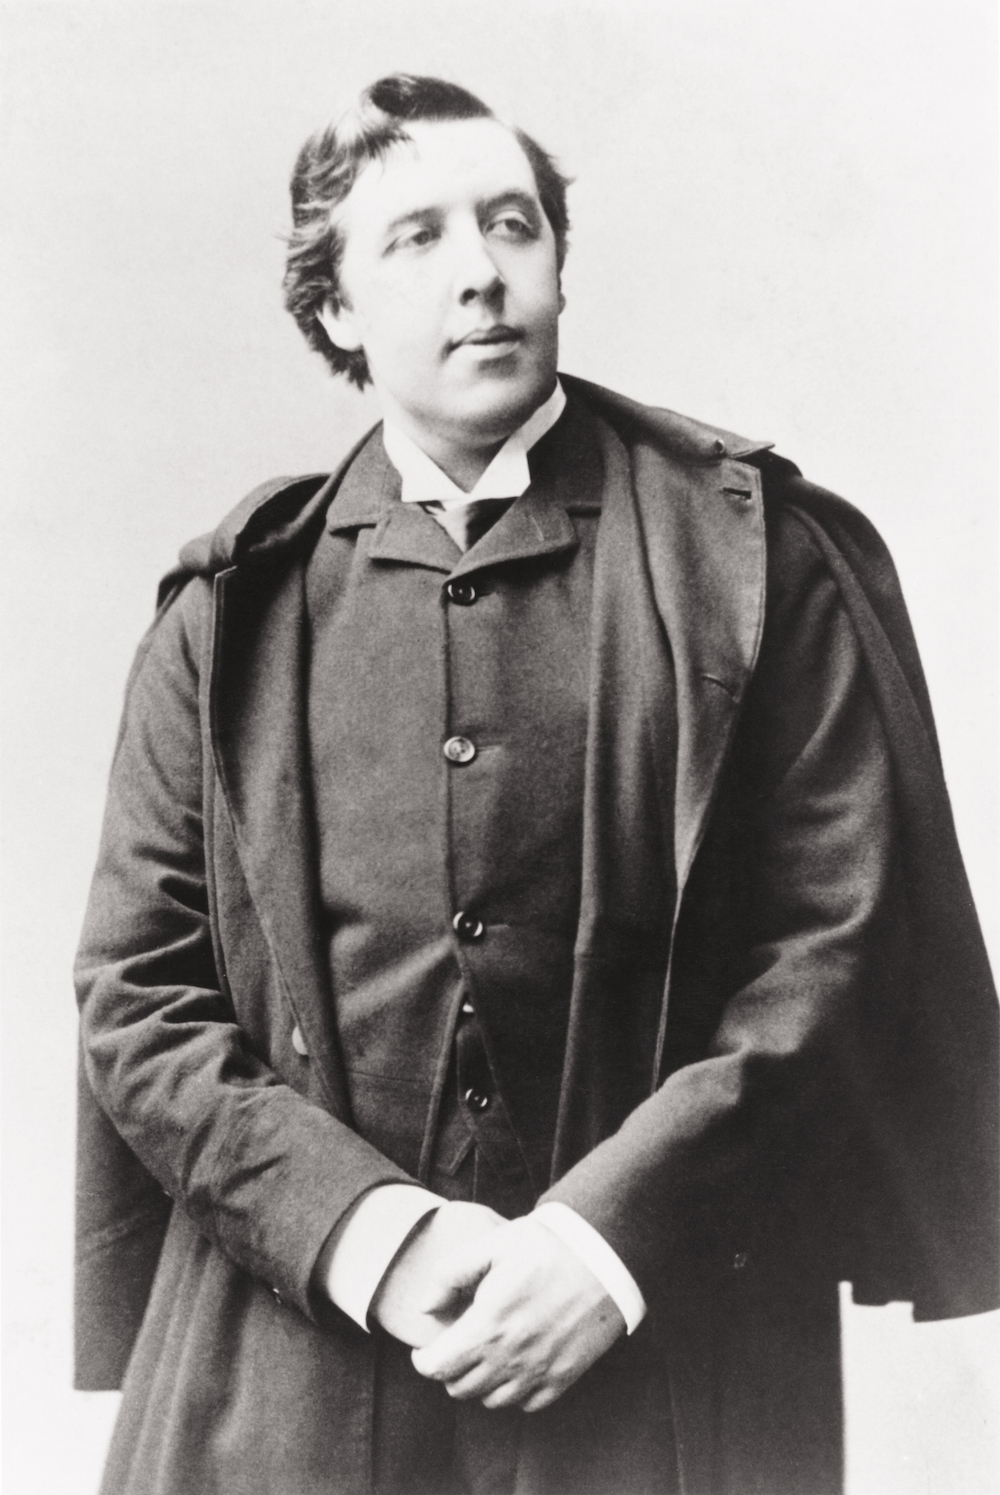 oscar wilde 2 essay Two of wilde's four writings on aesthetics are dialogues: though wilde had  evolved professionally from lecturer to writer,.